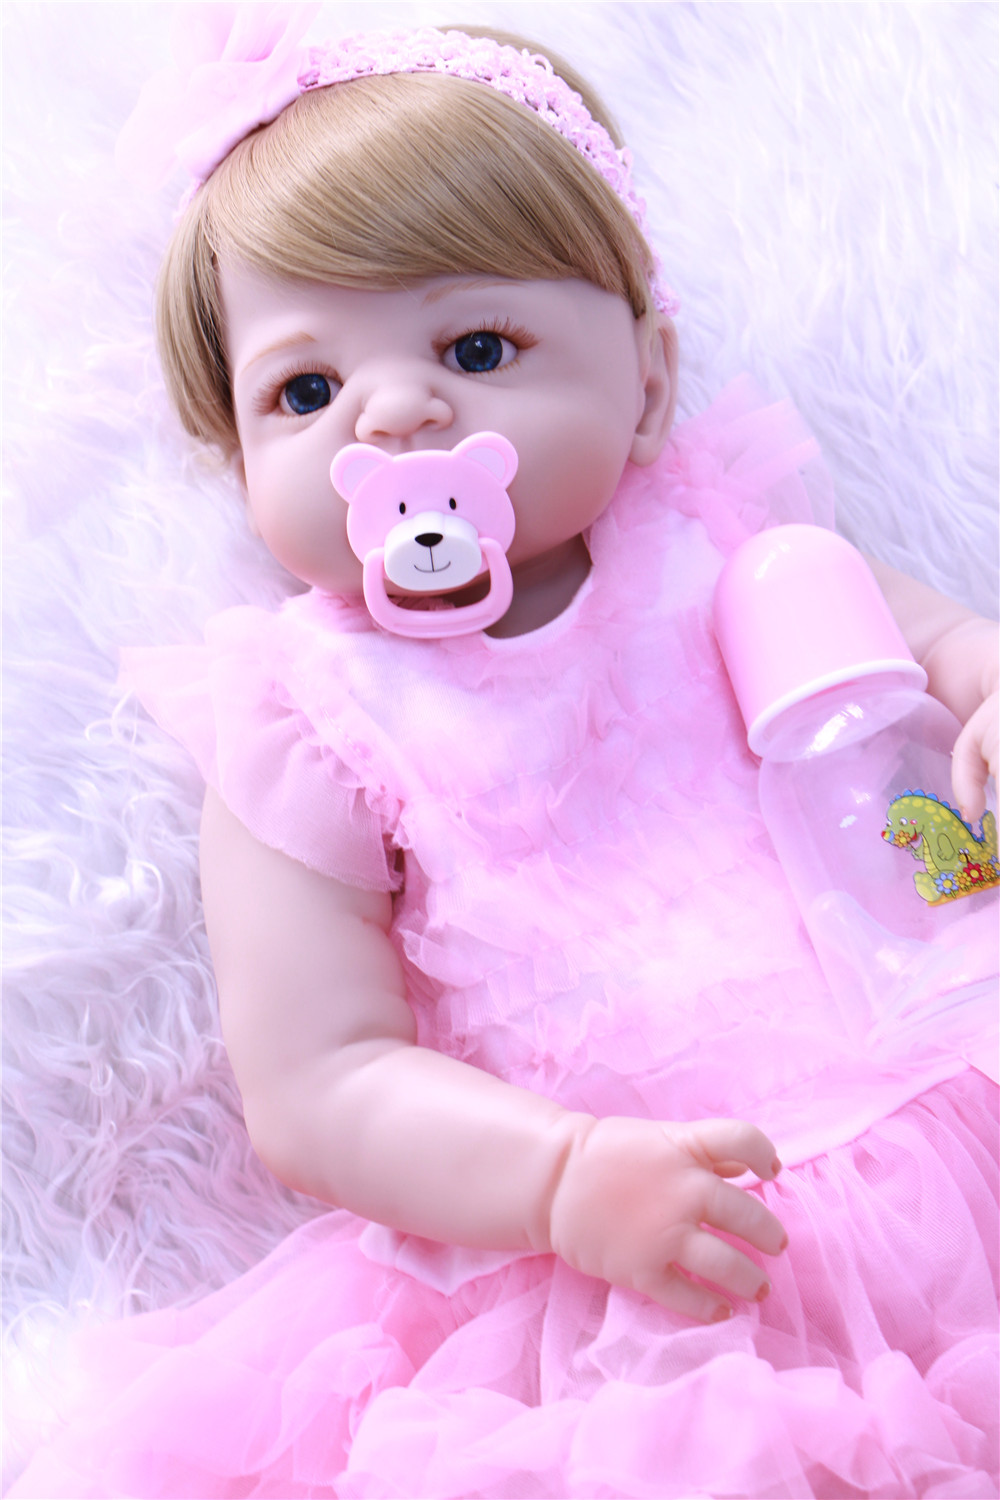 55cm Full Silicone Body Reborn Girl Baby Doll Toy Lifelike Vinyl <font><b>Princess</b></font> <font><b>Toddler</b></font> Doll Birthday Gift Present Girl Brinquedos image